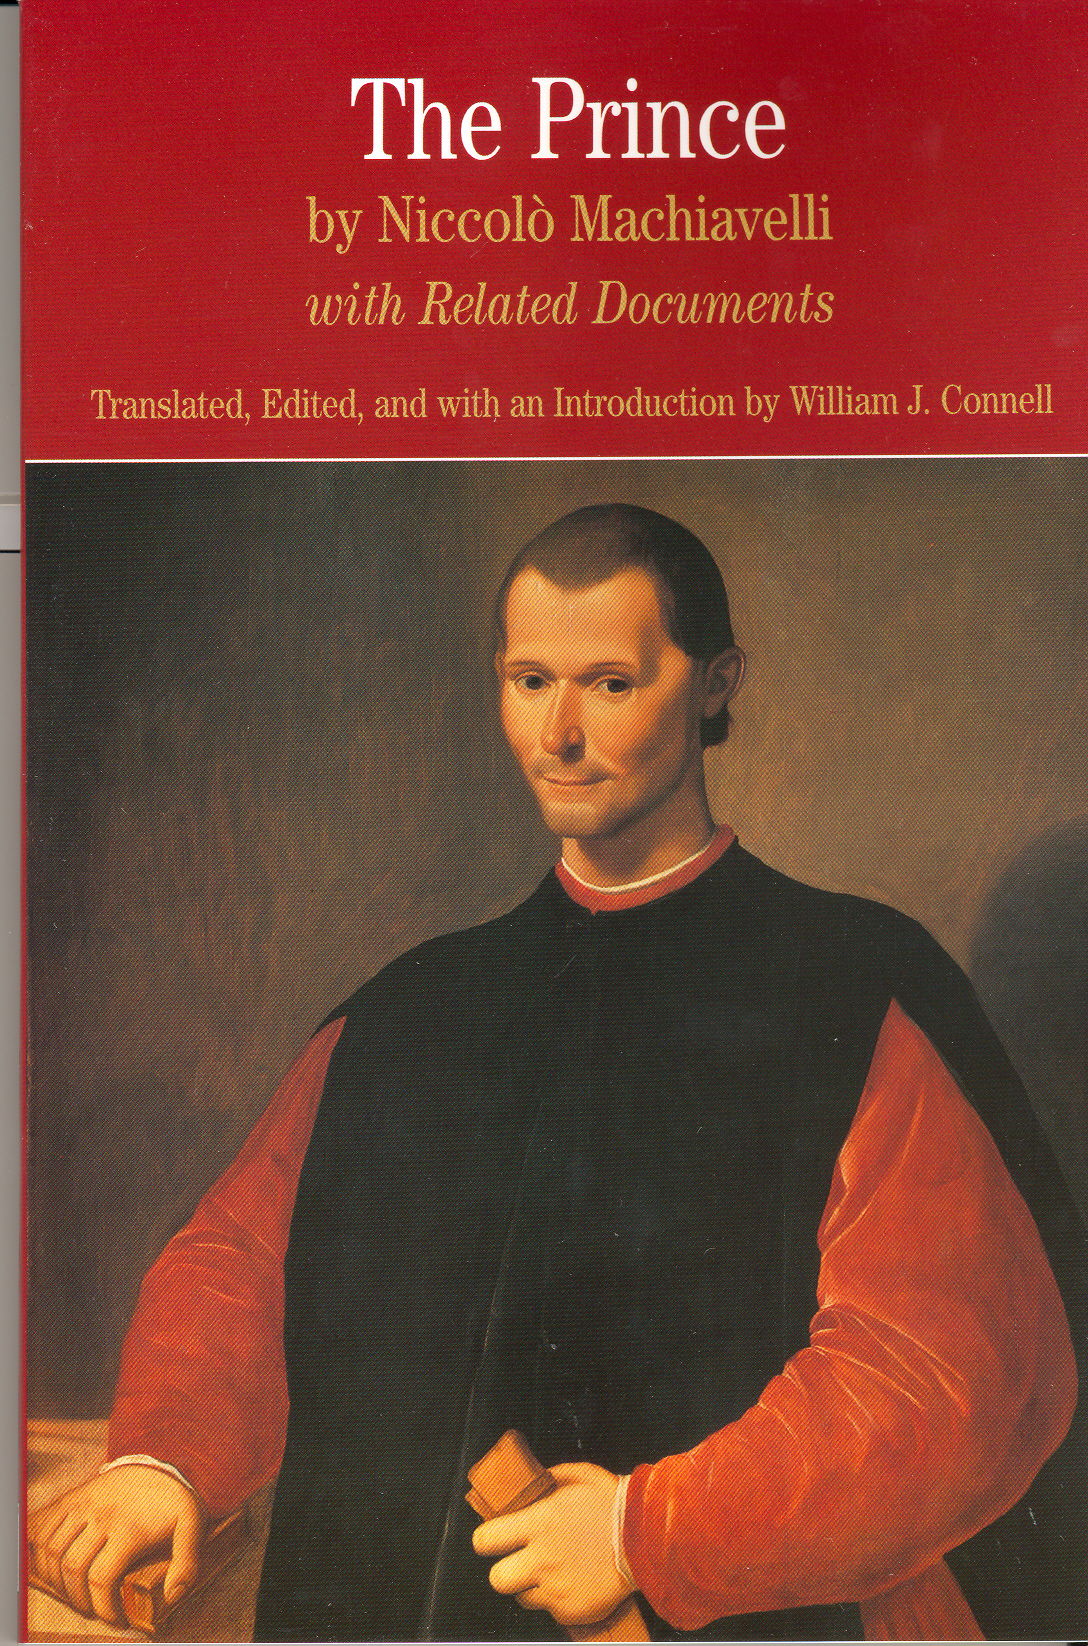 a view of governing a different state in niccolo machiavellis the prince His exemplary prince, was very different from all as machiavelli states, a prince needs to have the discernment to recognize the good or bad in what the types of political behavior which are discussed with apparent approval by machiavelli in the prince were regarded as.